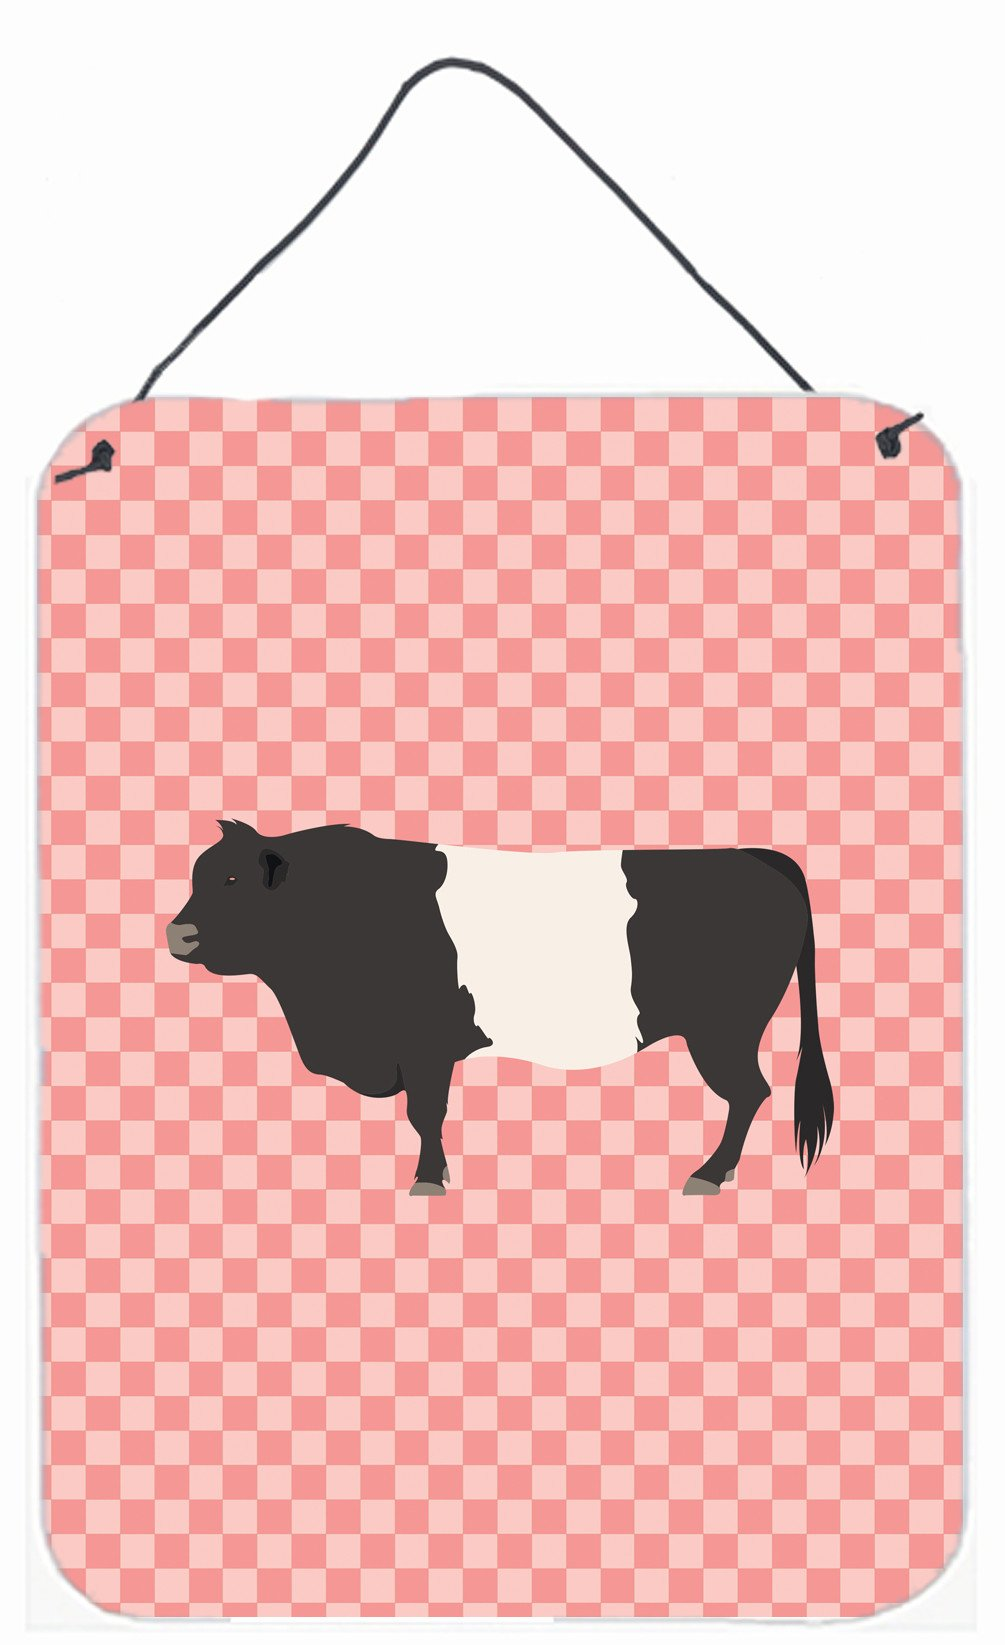 Belted Galloway Cow Pink Check Wall or Door Hanging Prints BB7831DS1216 by Caroline's Treasures